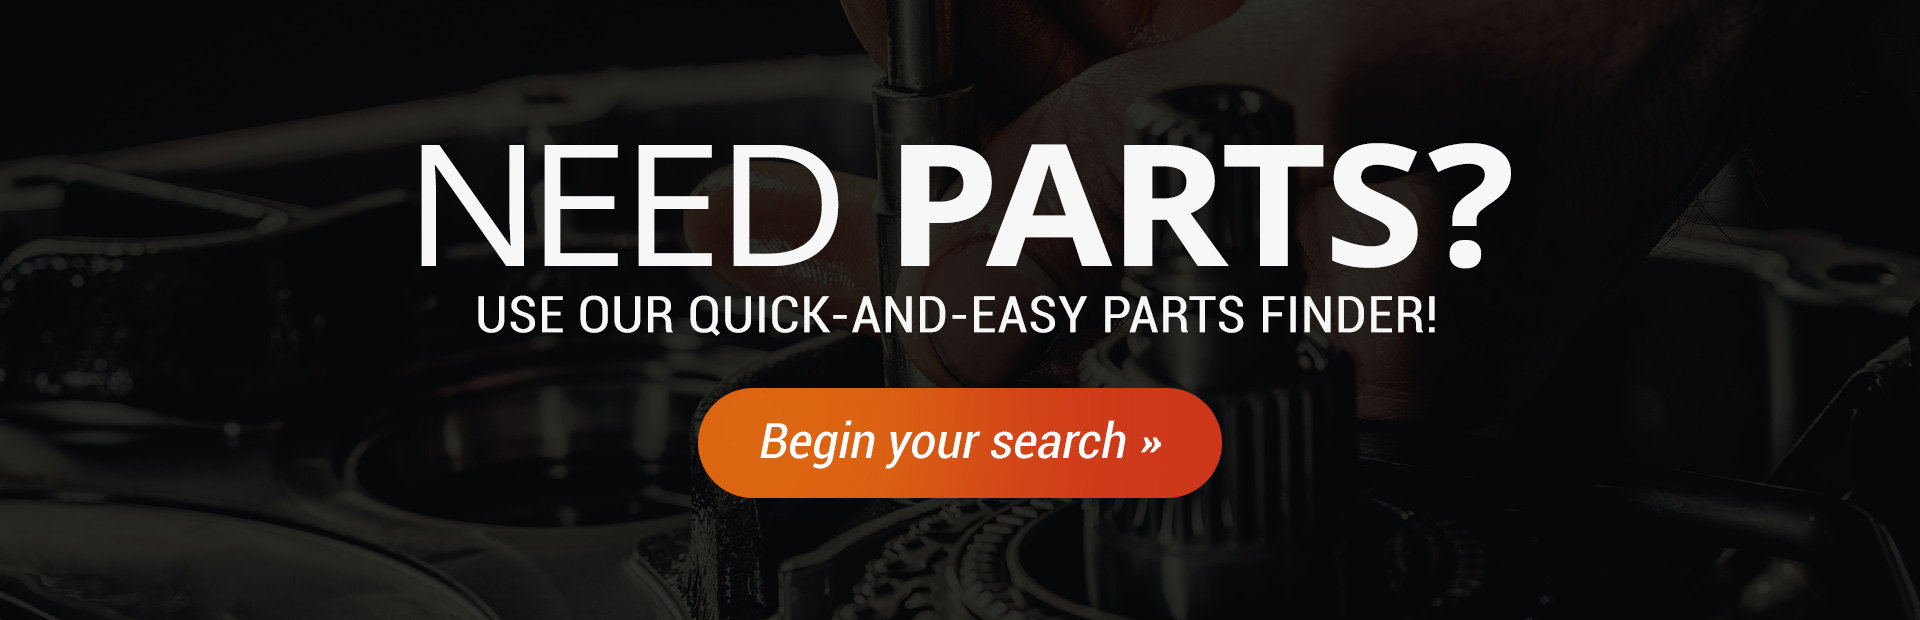 Quick-and-Easy Parts Finder: Click here to begin your search.